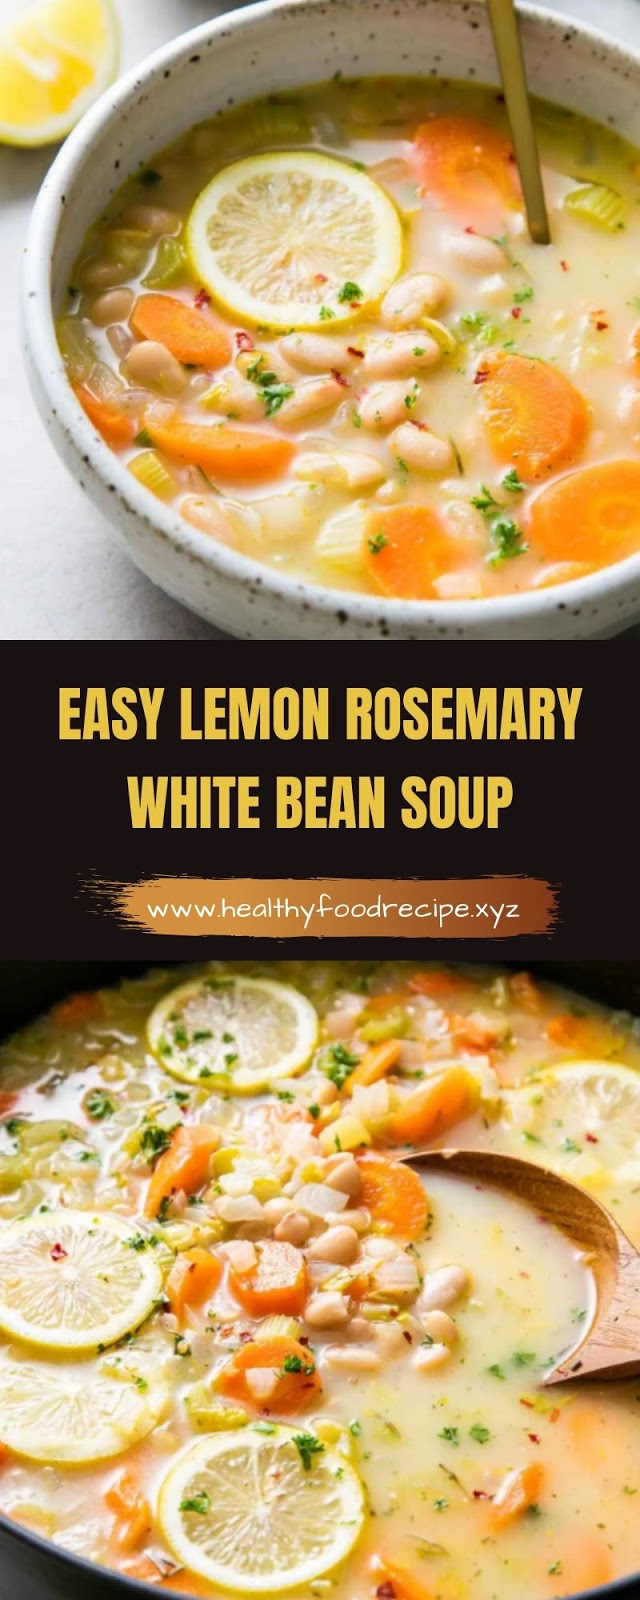 EASY LEMON ROSEMARY WHITE BEAN SOUP